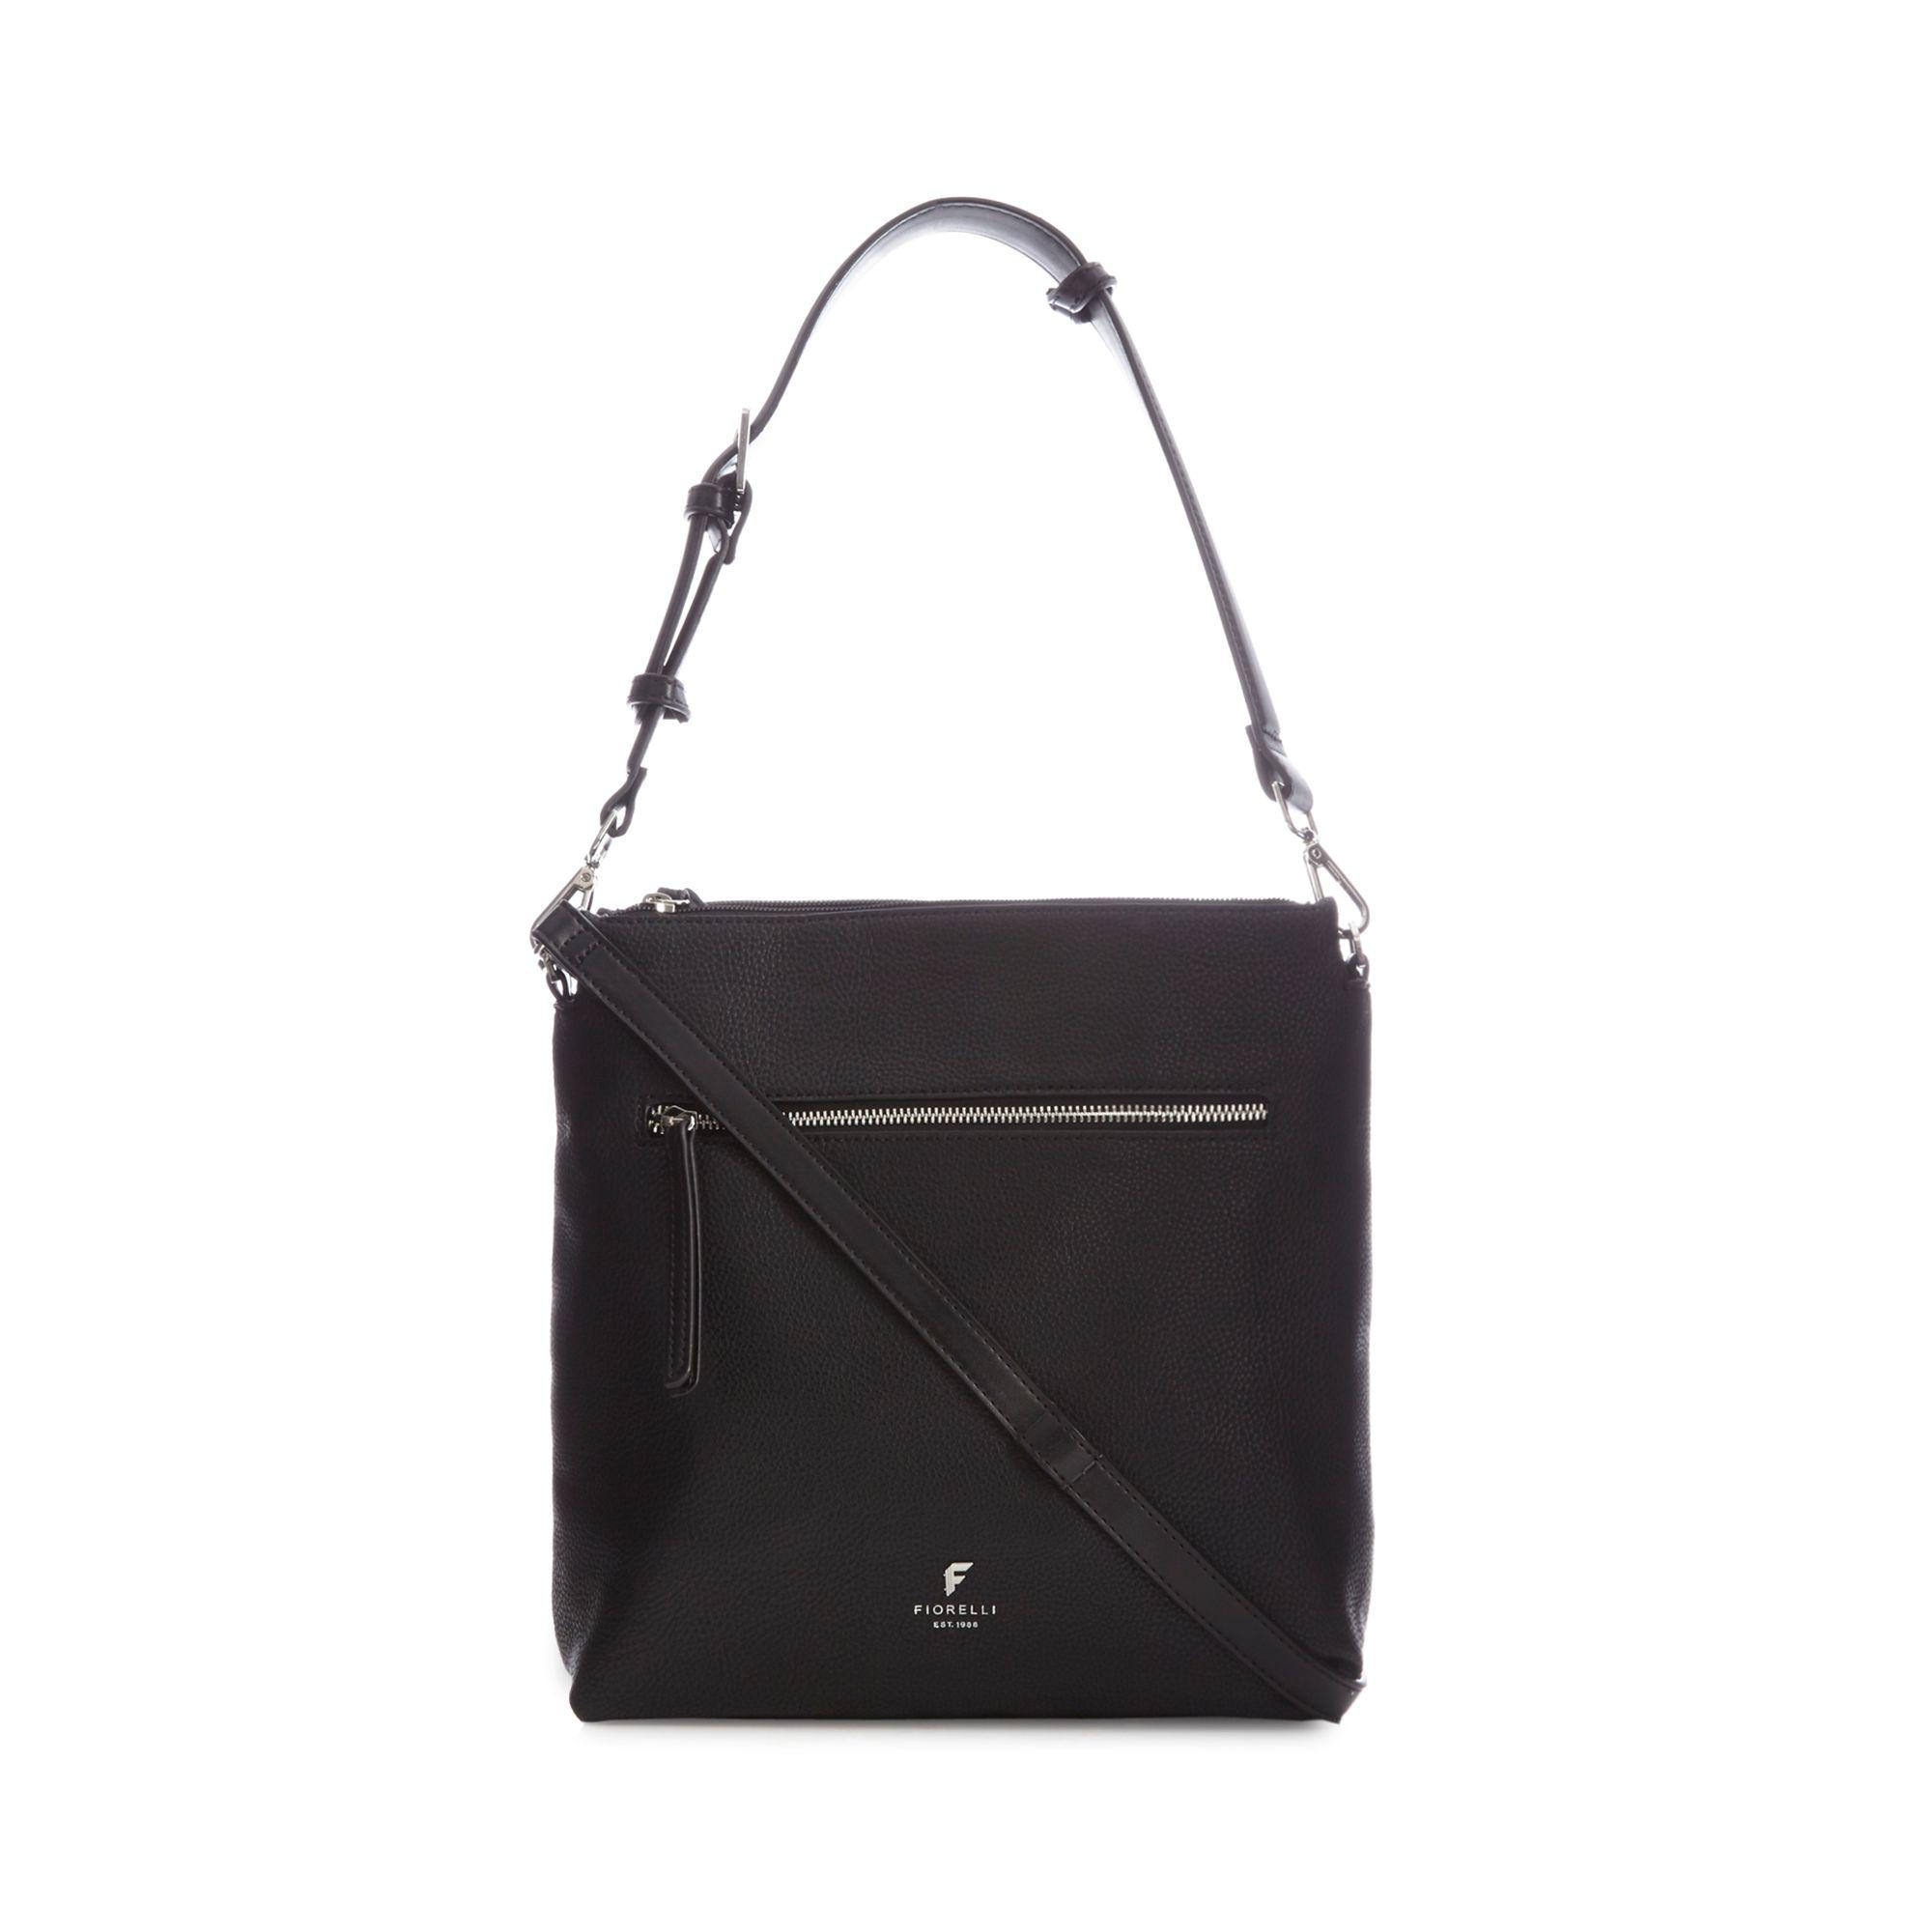 Fiorelli Black  elliot  Satchel Bag in Black - Lyst 3fb8ebd5049ab